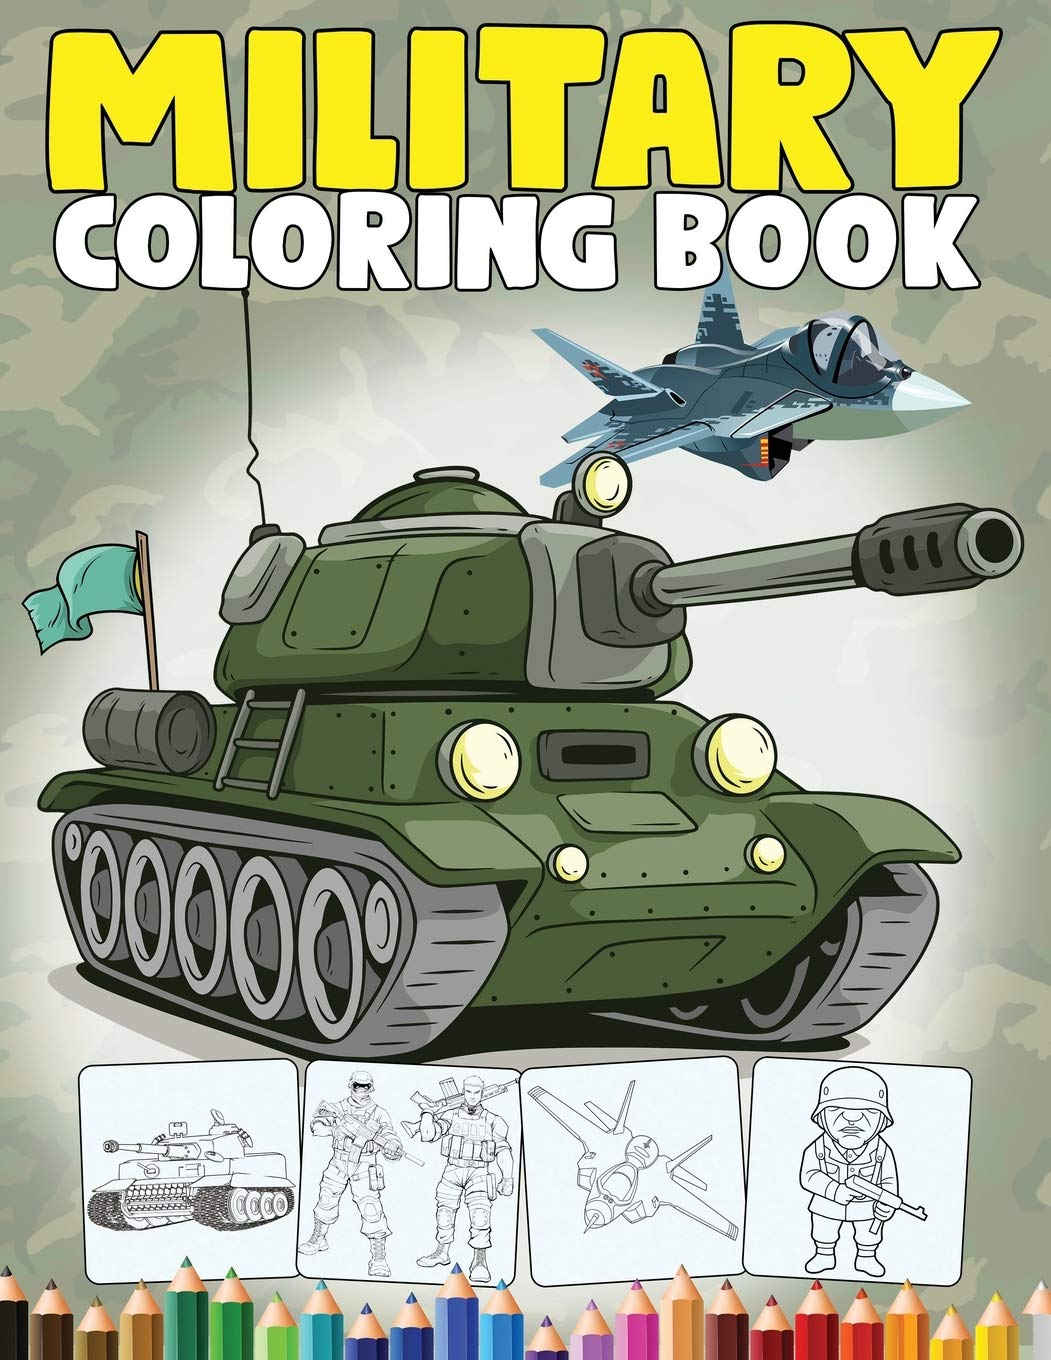 Military Coloring Book An Army Coloring Book For Kids With Awesome Coloring Pages Of Army Men Soldiers War Planes Tanks And More Kidd S Coloring Books Kidd Angela 9798656697316 Amazon Com Books